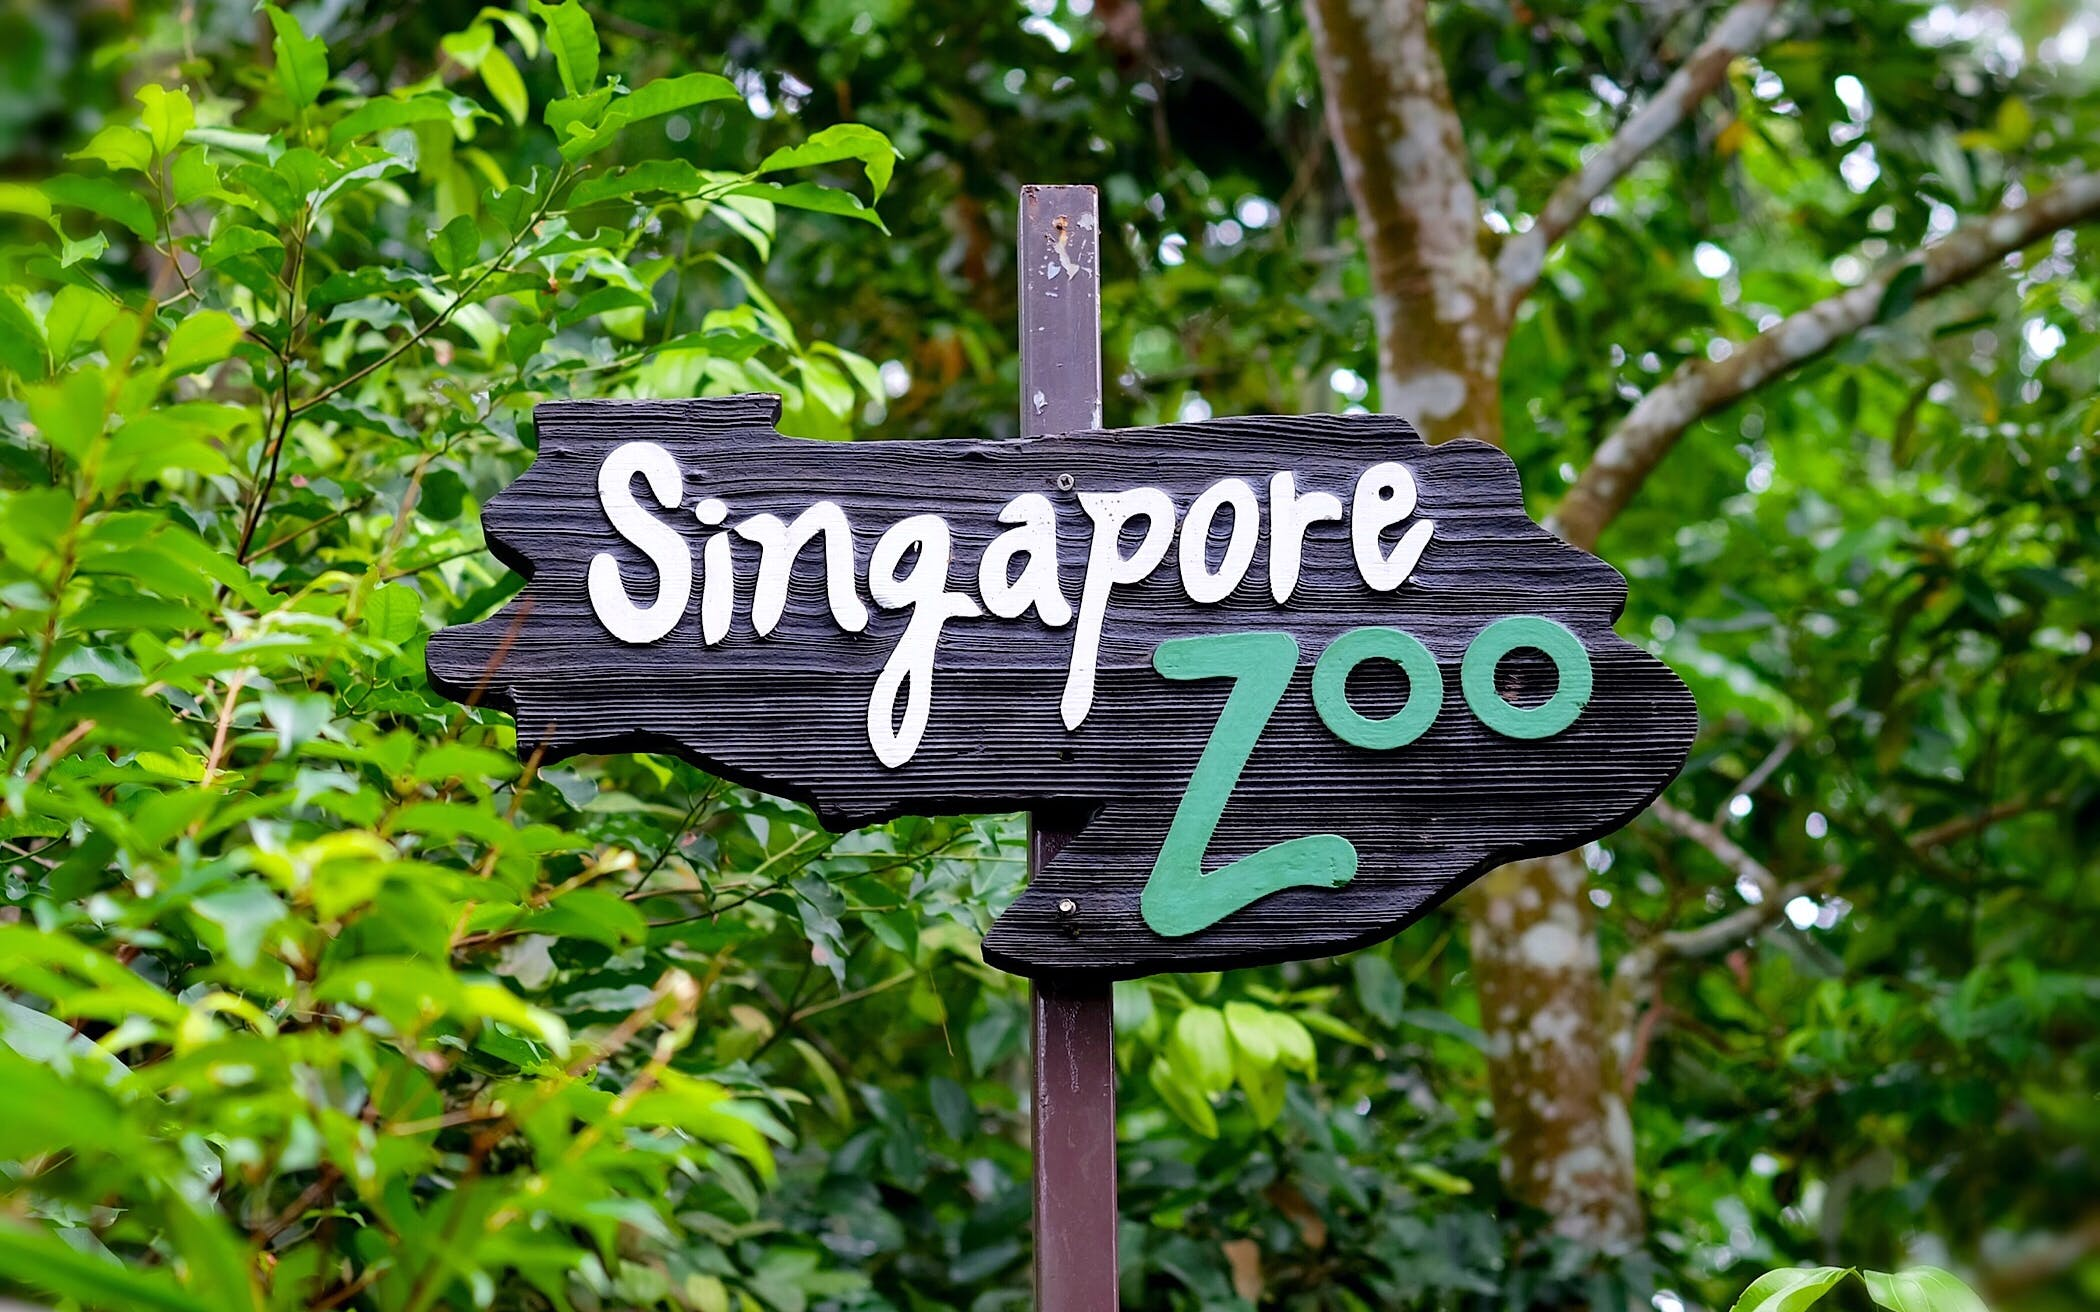 singapore zoo tickets with tram ride-1